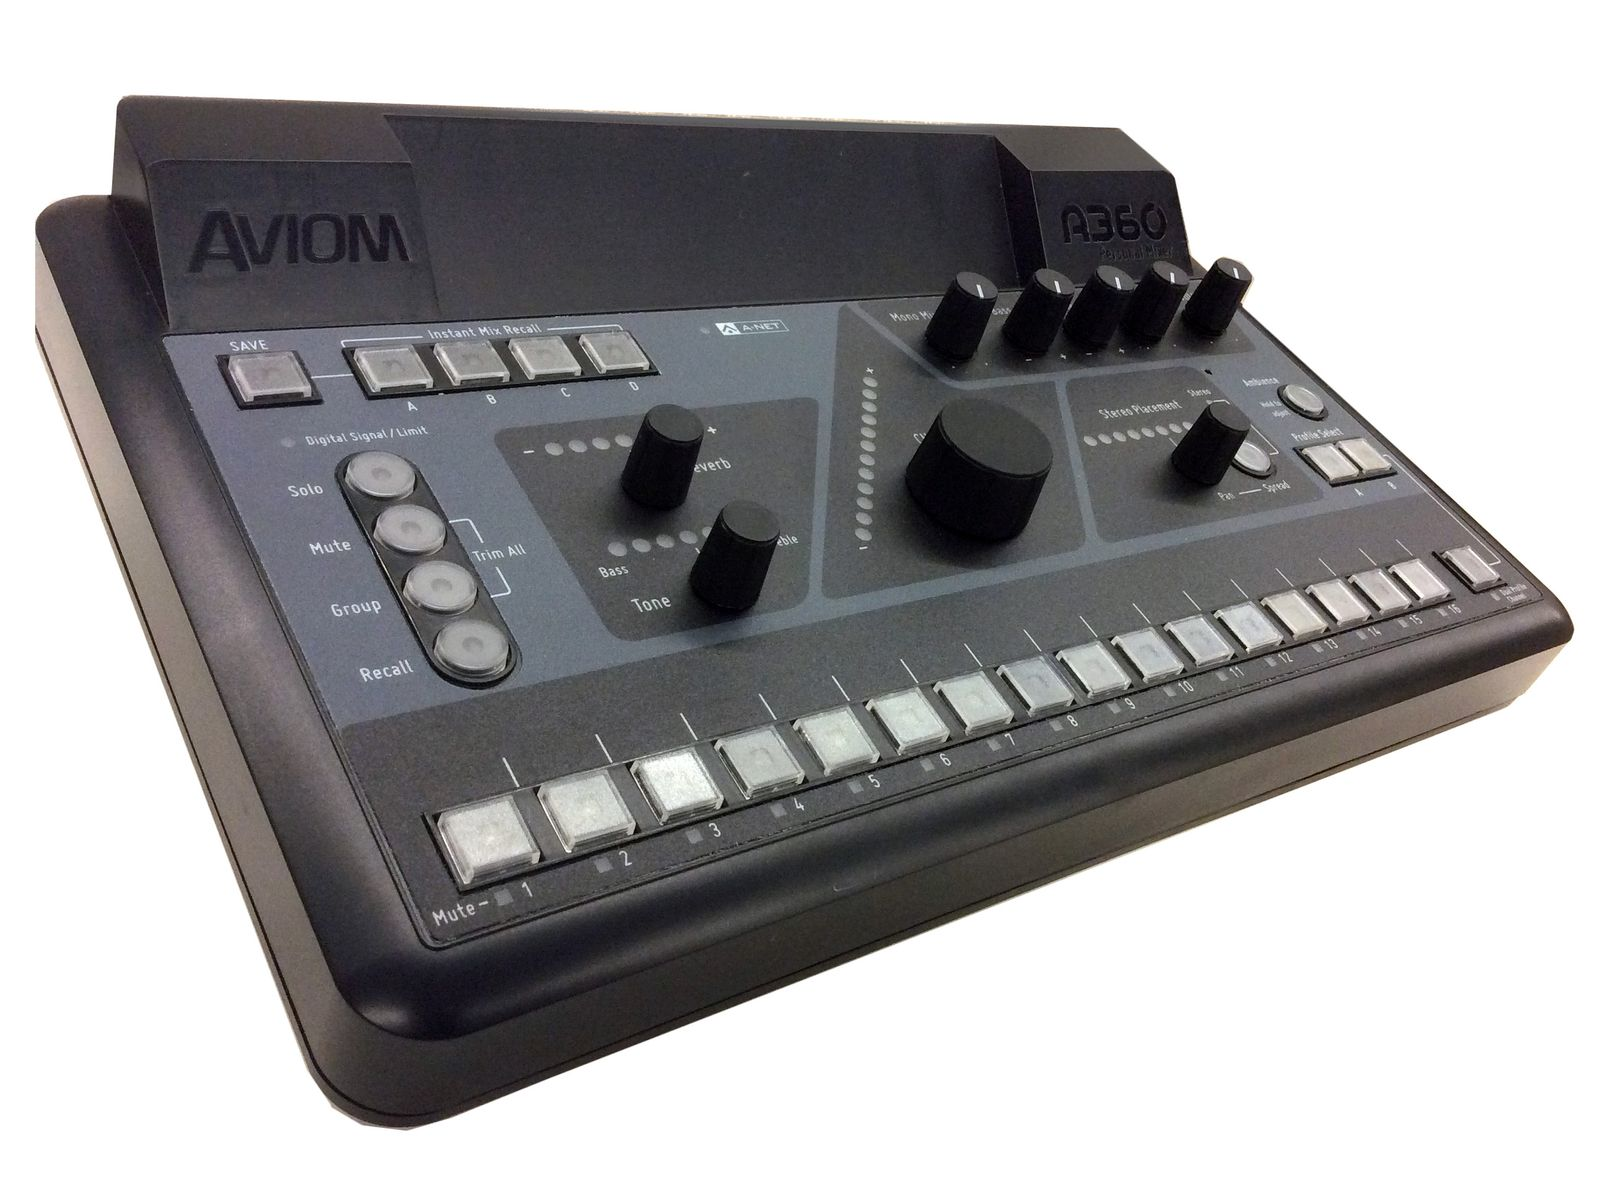 Aviom A360 Personal Mixer at Hollywood Sound Systems